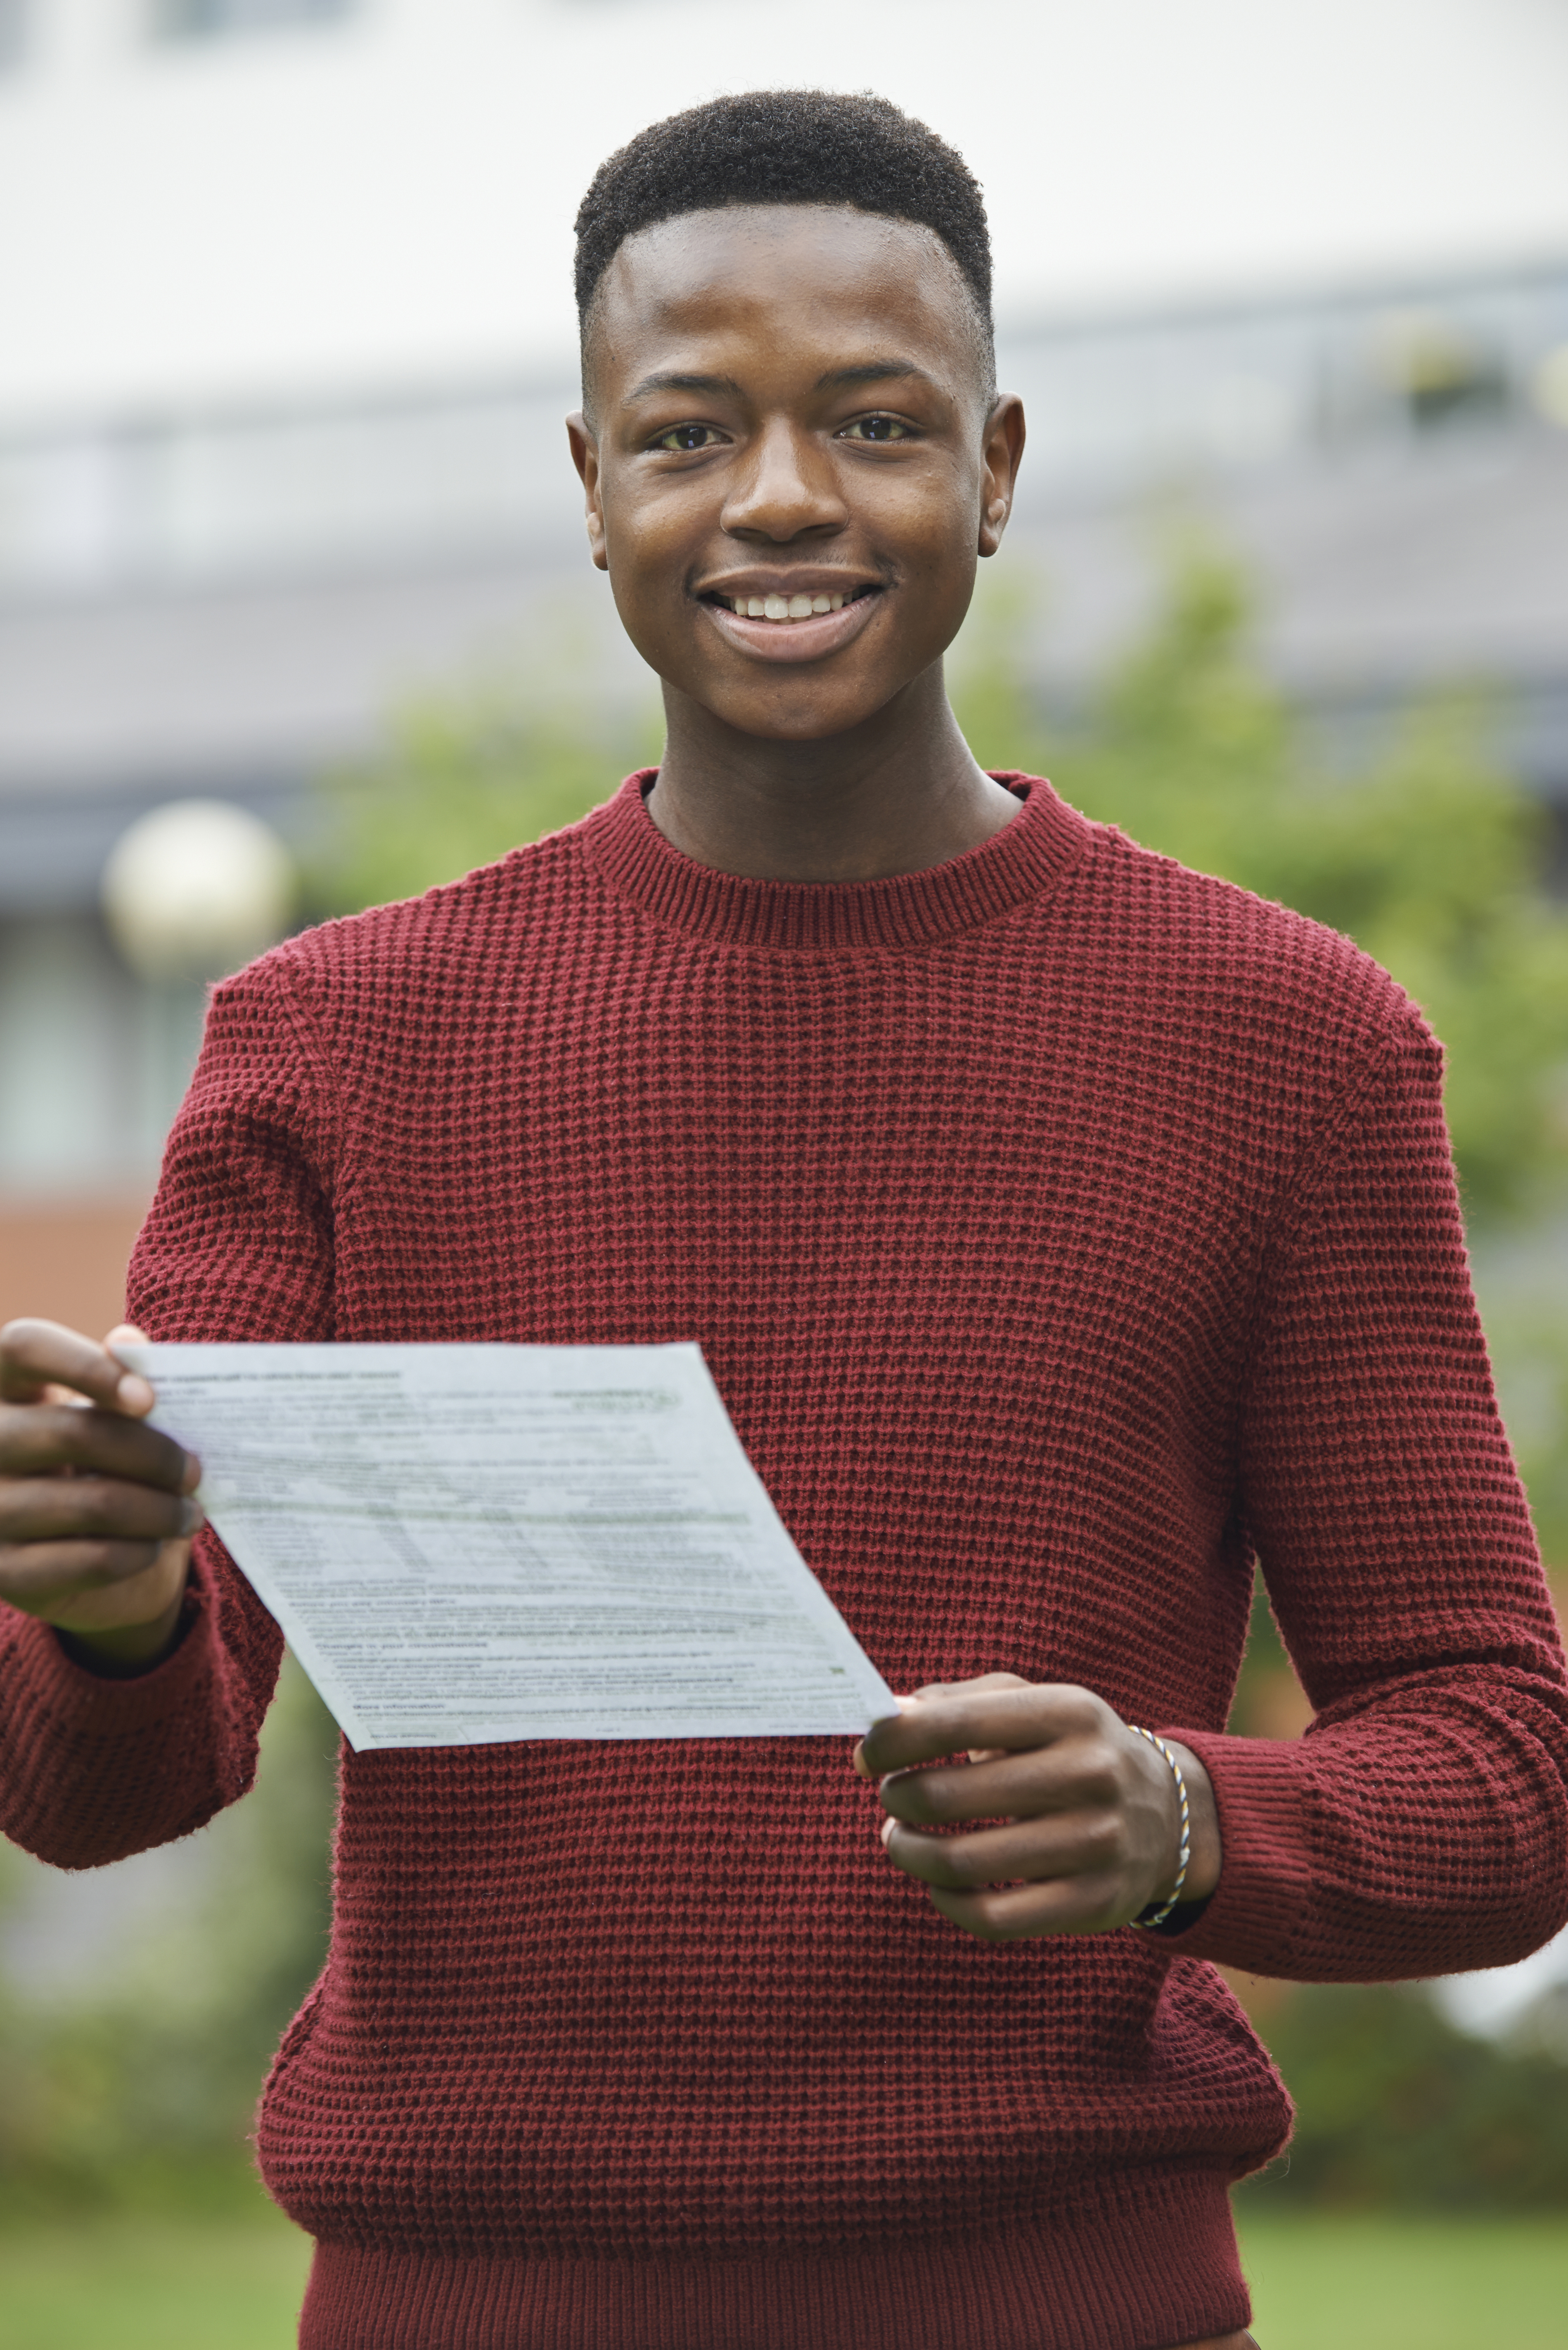 Male teenage student on results day, smiling whilst looking at their A level grades.